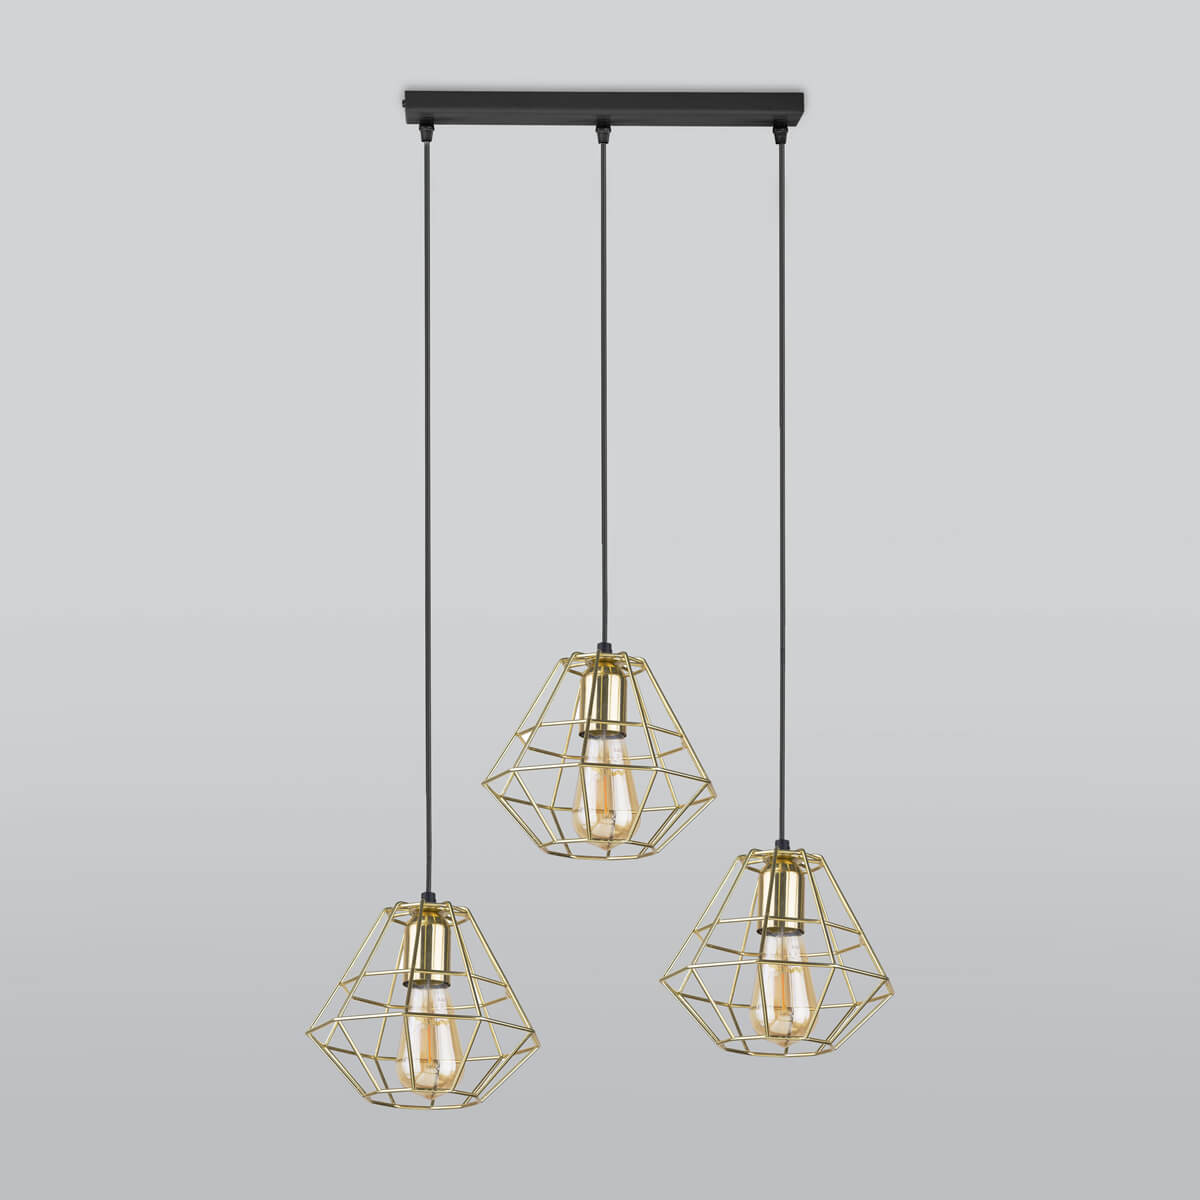 Светильник TK Lighting 4111 Diamond Gold